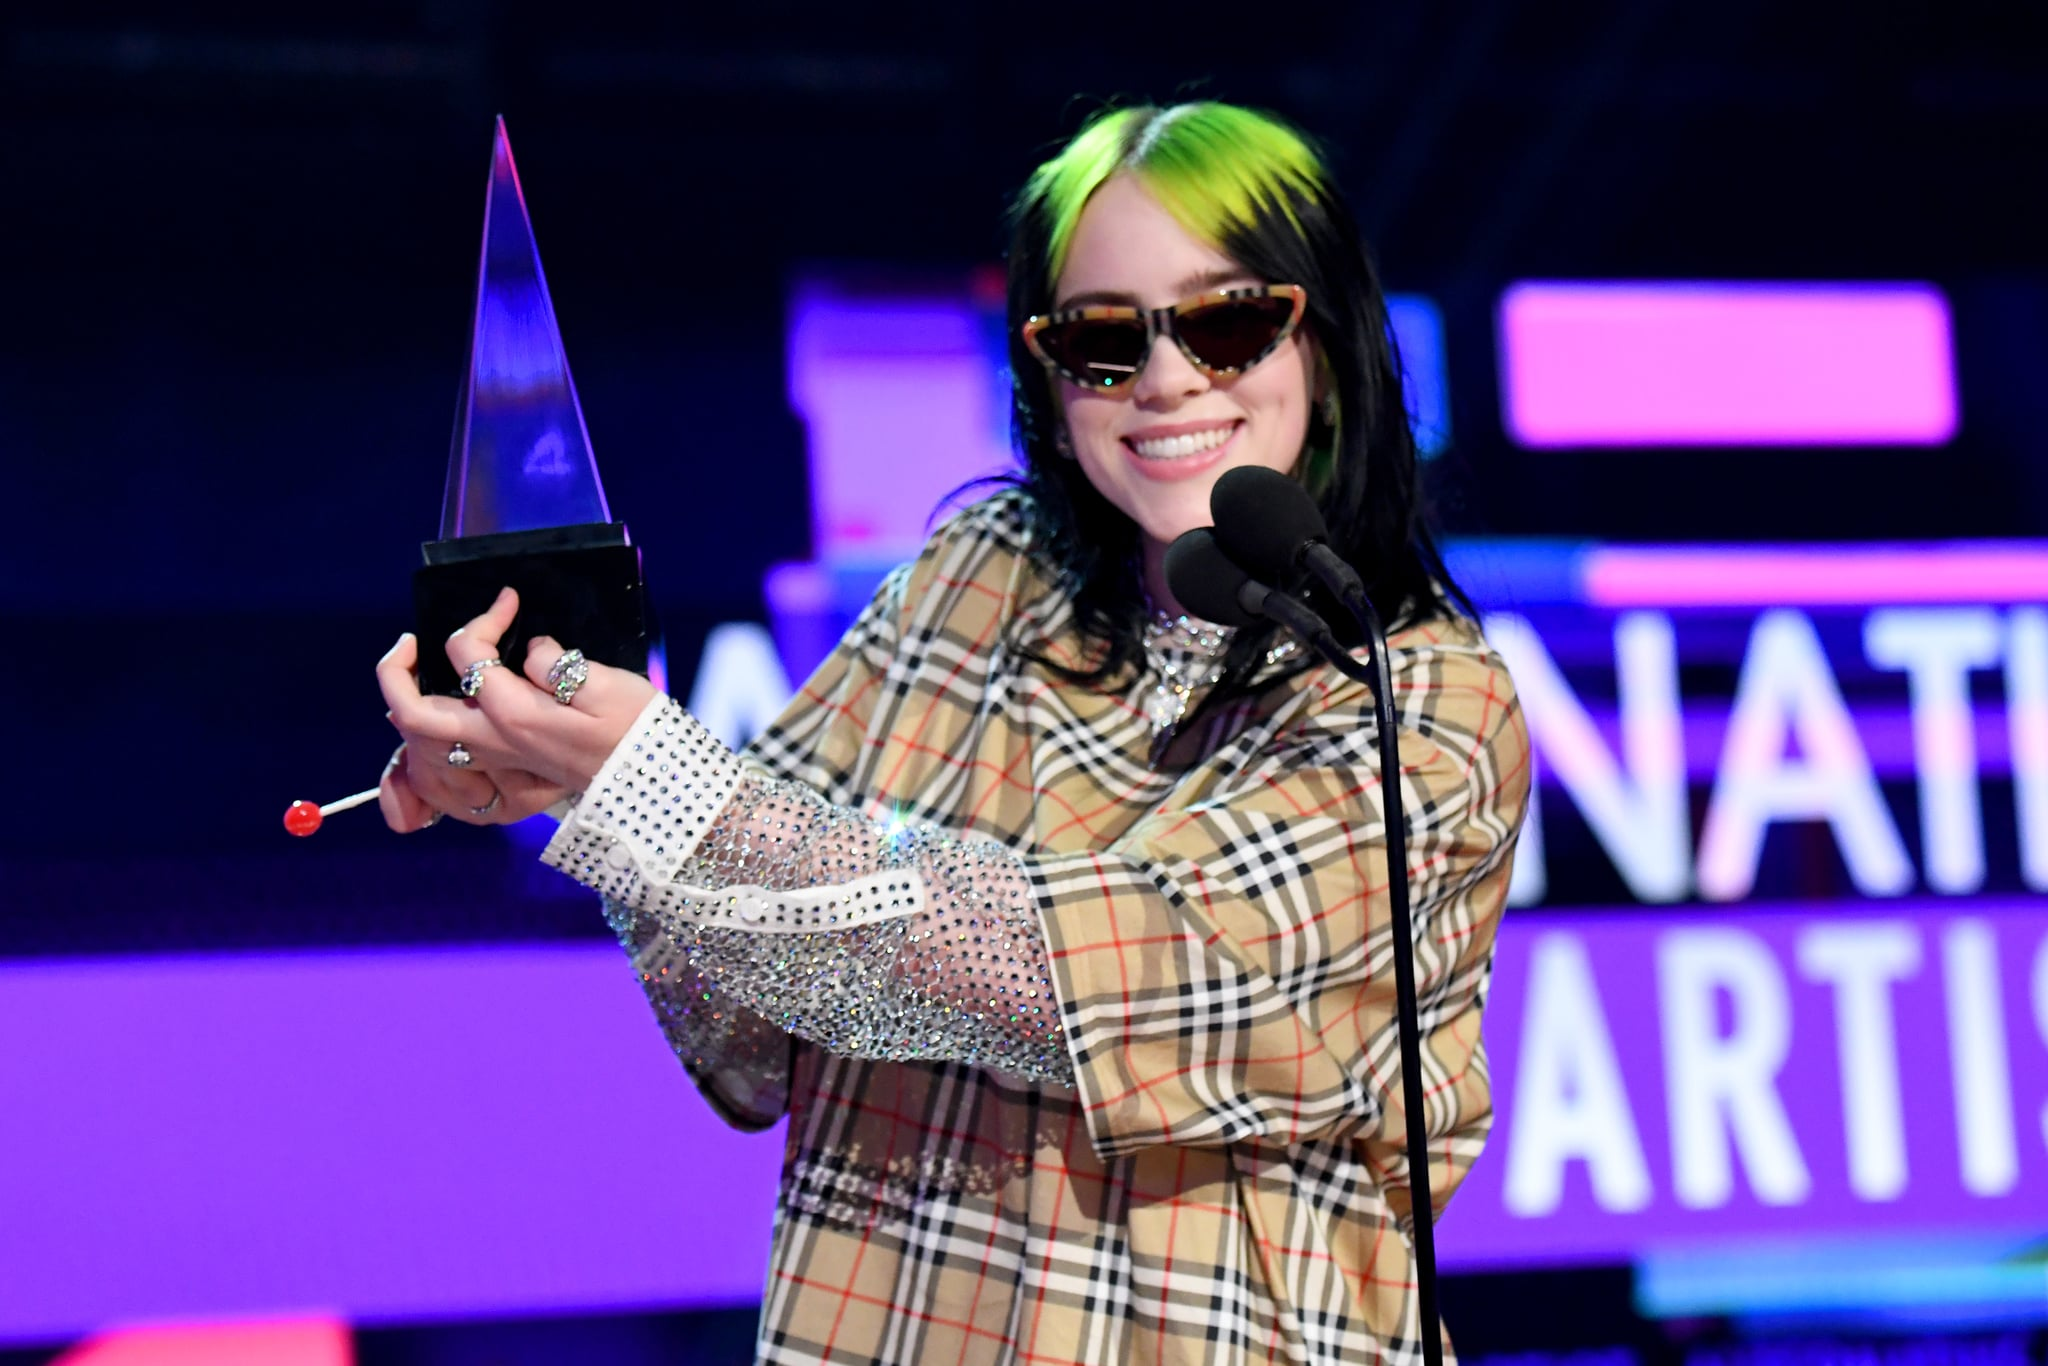 LOS ANGELES, CALIFORNIA - NOVEMBER 24: Billie Eilish accepts the Favorite Artist - Alternative Rock award onstage during the 2019 American Music Awards at Microsoft Theater on November 24, 2019 in Los Angeles, California. (Photo by Jeff Kravitz/AMA2019/FilmMagic for dcp)